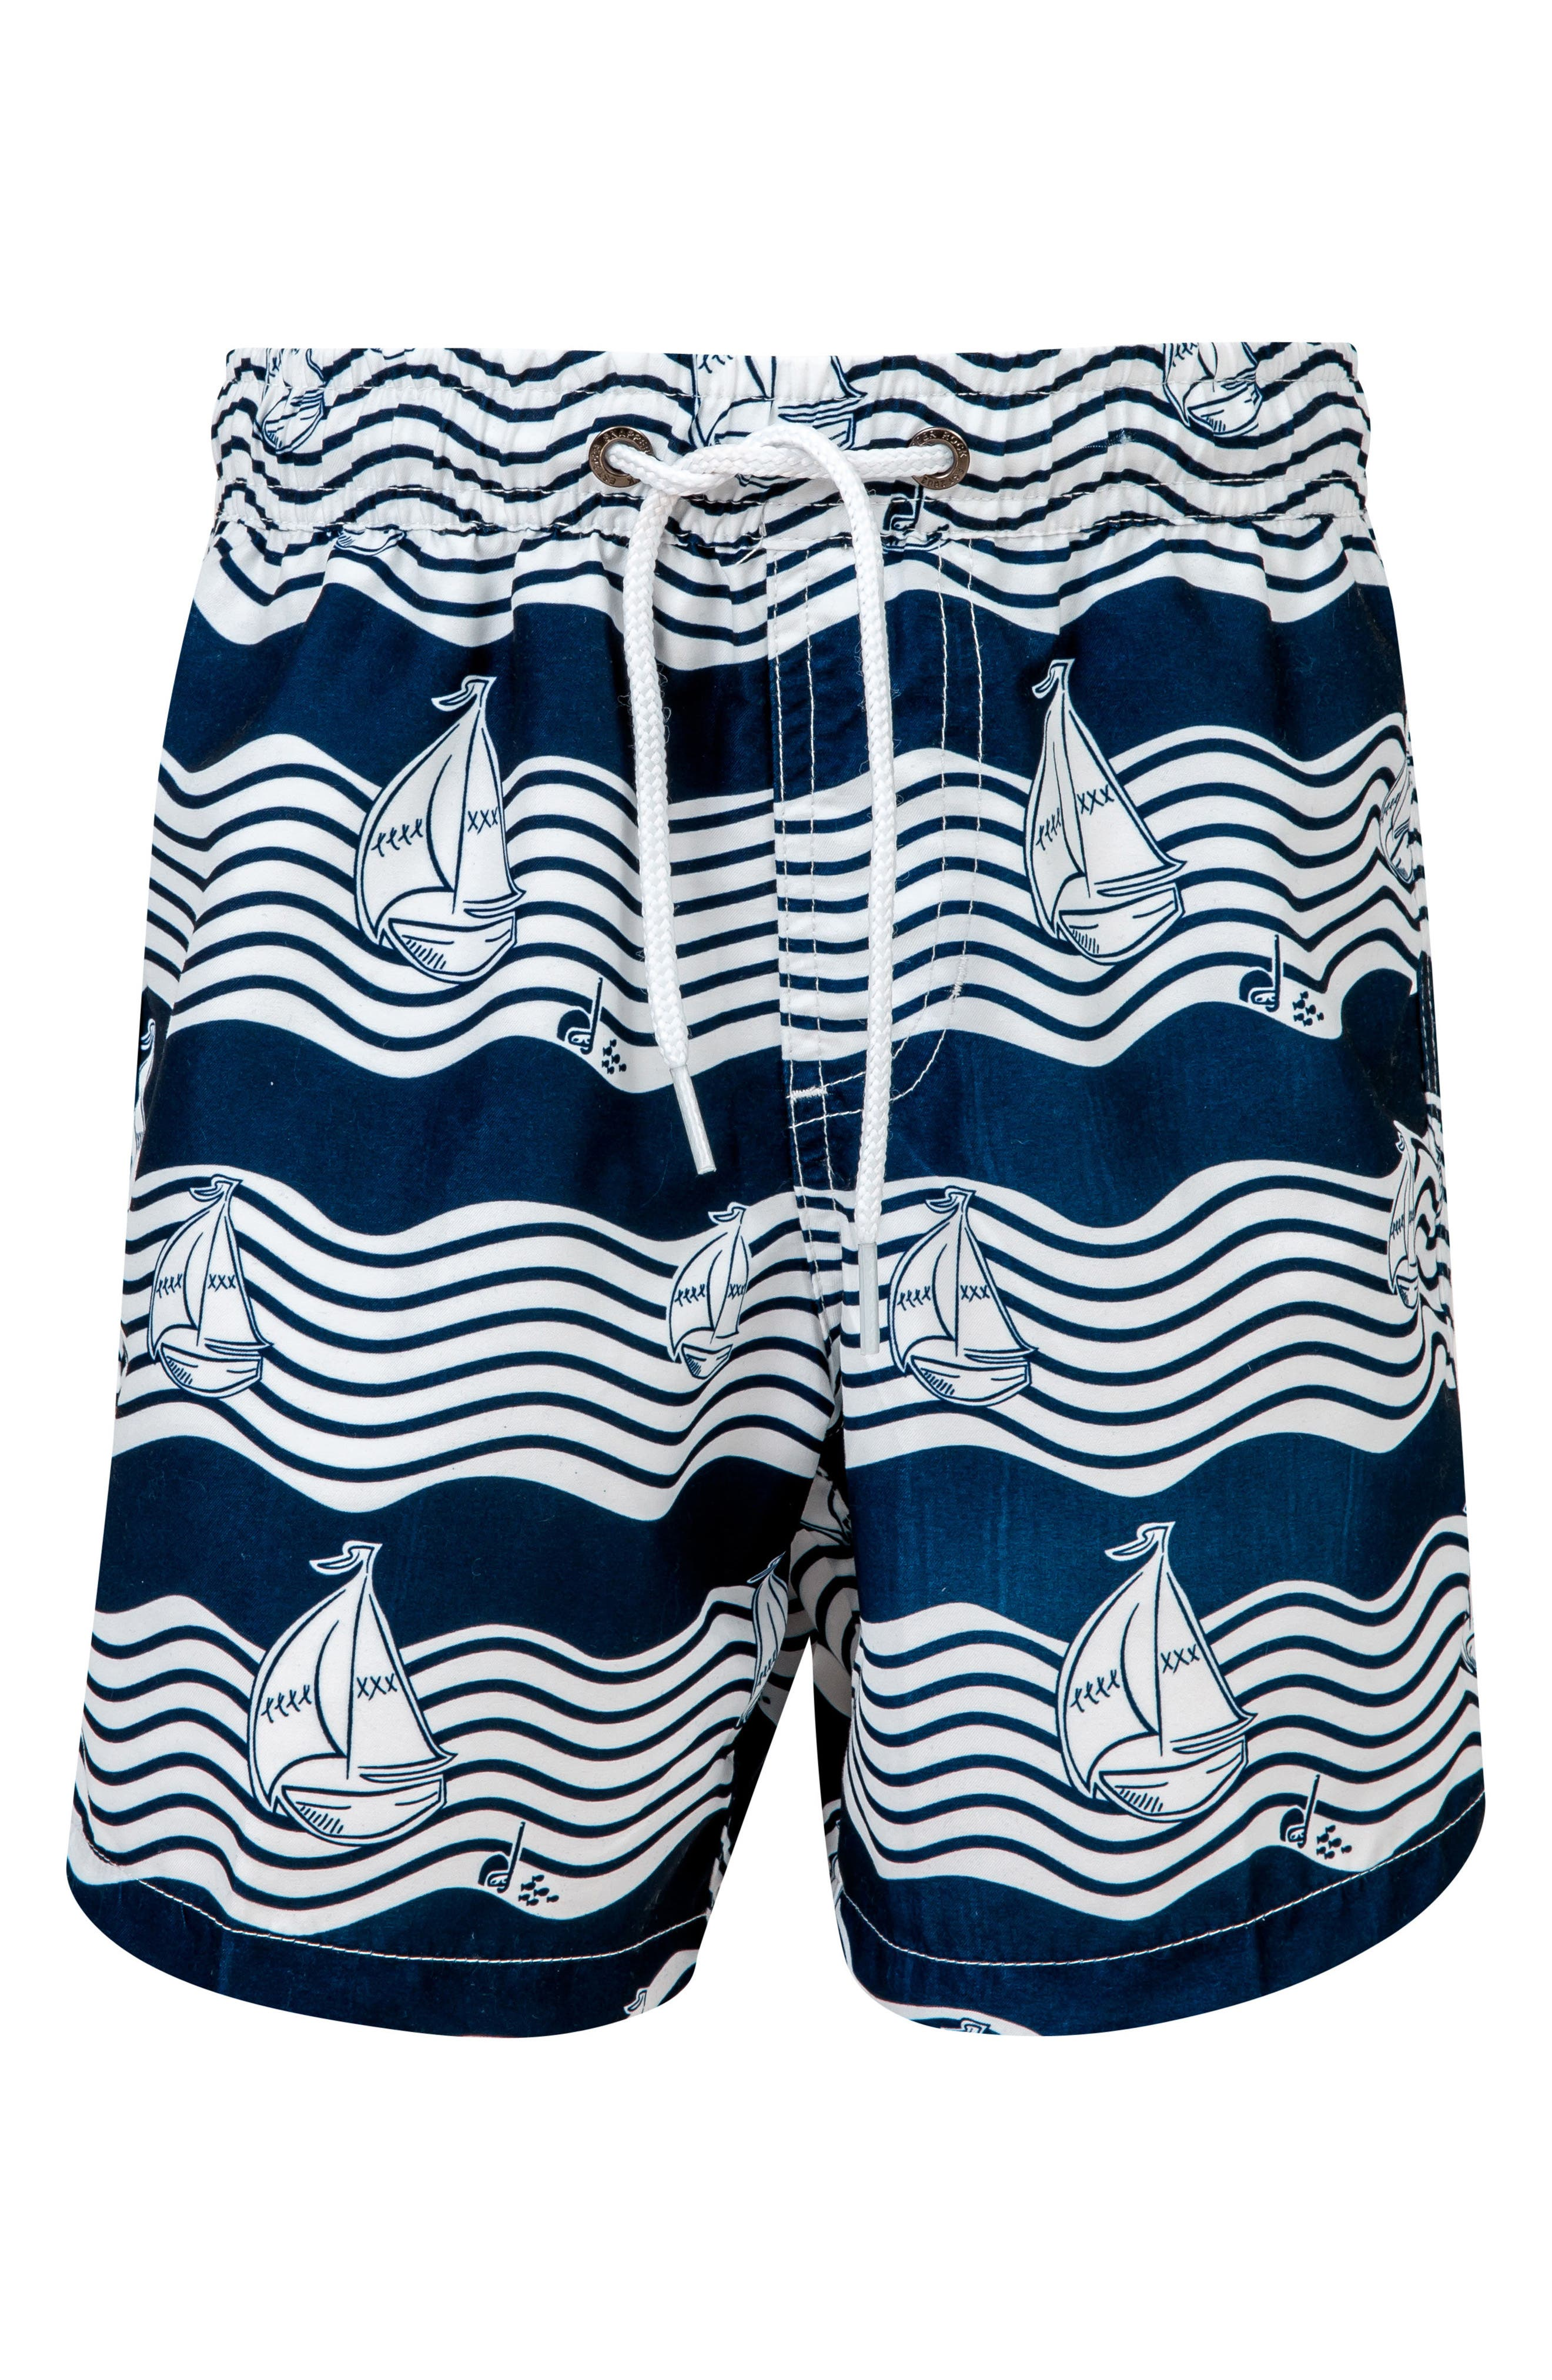 Ocean Explorer Board Shorts,                         Main,                         color, White/ Navy